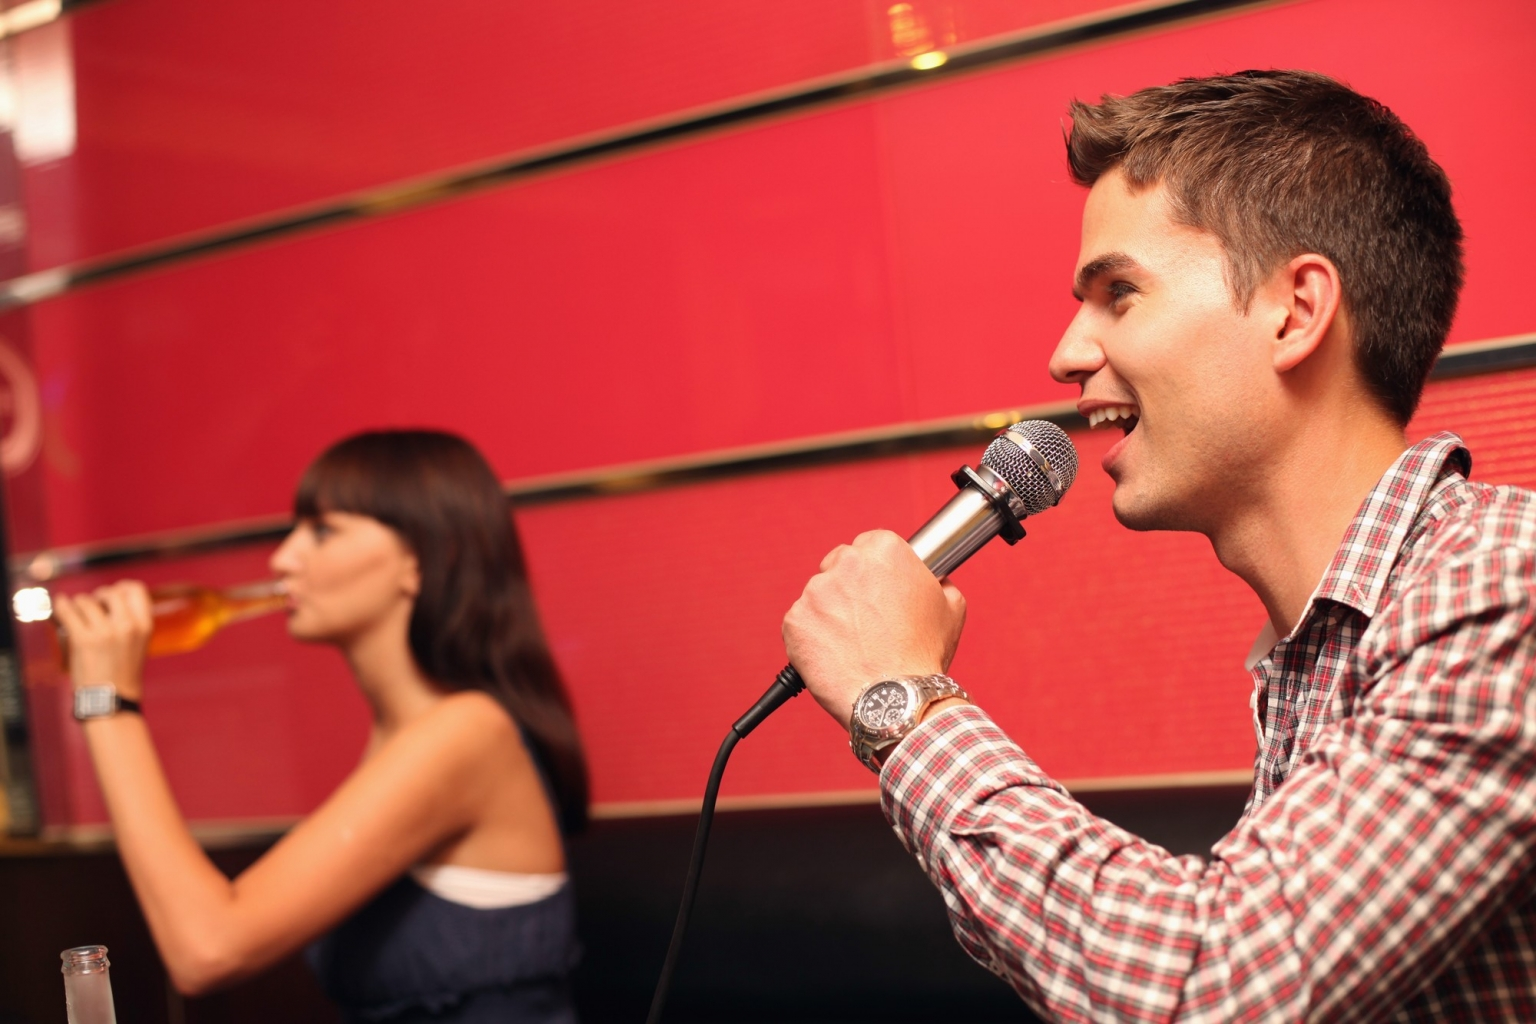 Coole Teambuilding Events in der Karaoke Bar